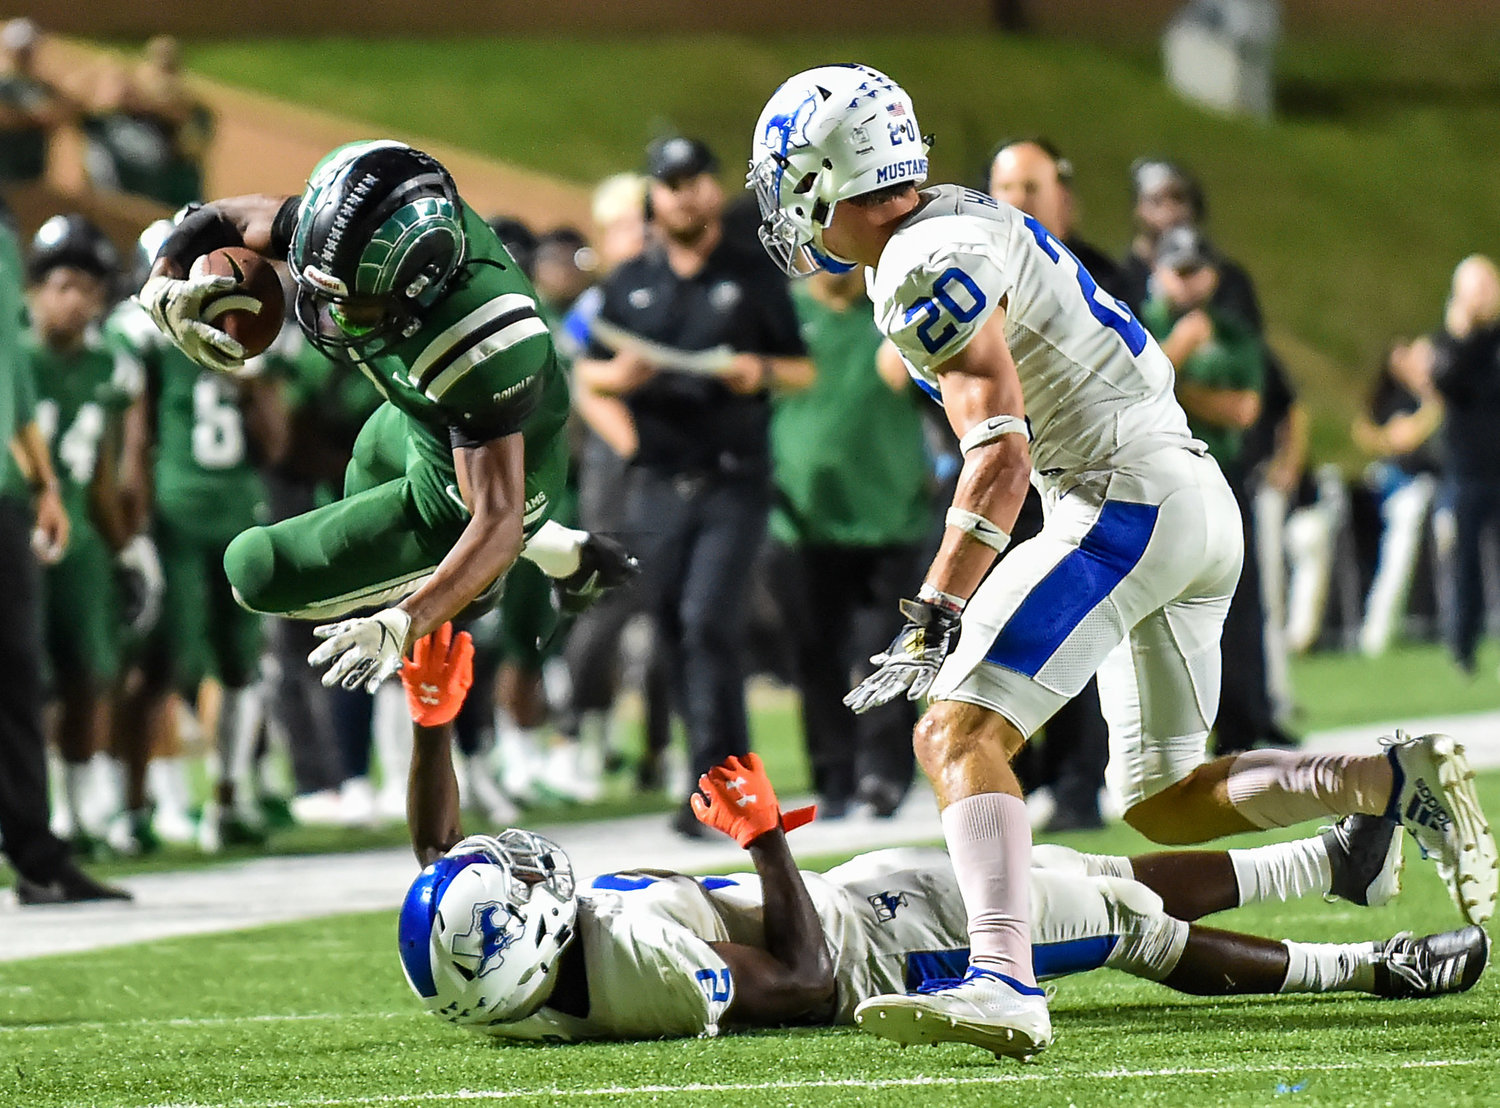 Katy, Tx. Oct. 18, 2019: Mayde Creek's Jacoby Wilson (8) carries the ball picking up the first down during a conference game between Katy Taylor Mustangs and Mayde Creek Rams at Rhodes Stadium. (Photo by Mark Goodman / Katy Times)